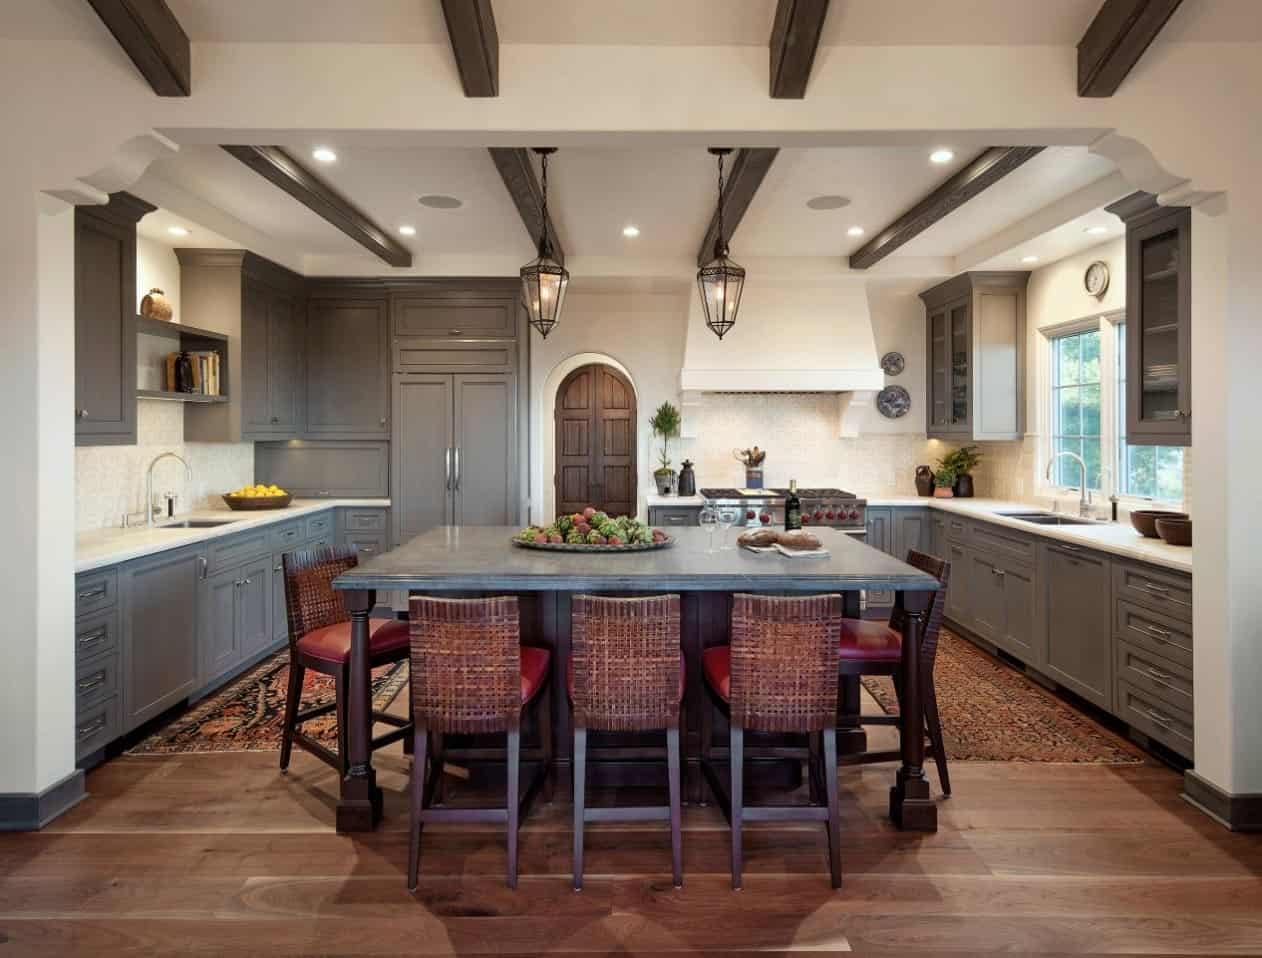 The light gray shaker cabinets and drawers of this Spanish-style kitchen works well with the hardwood flooring and the white tray ceiling that has exposed dark wooden beams that matches with the kitchen island and its stools.